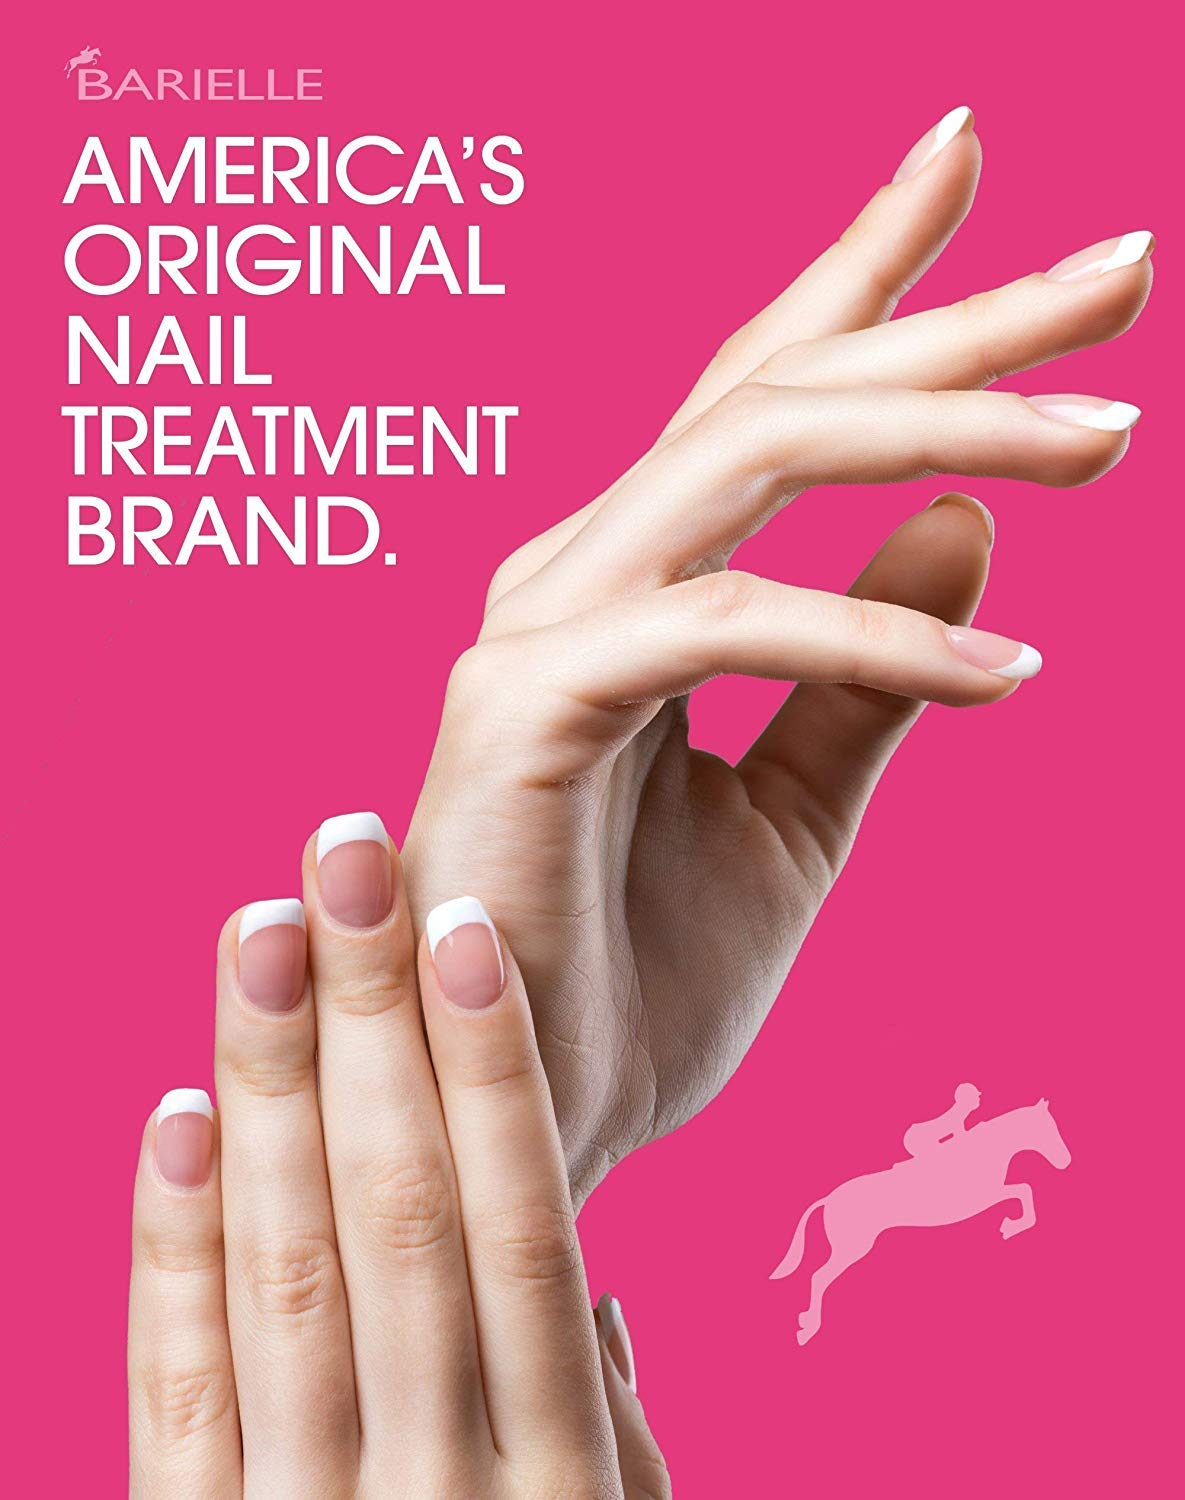 Barielle Clearly Noticeable Nail Thickener, Top Coat Instantly Thickens Nails Up To 50%, Perfect for Damaged Nails, Quick-Drying, Heals Cracked, Split, or Peeling Nails, Promotes Nail Growth, .5 Ounce : Nail Thickening Solutions : Beauty